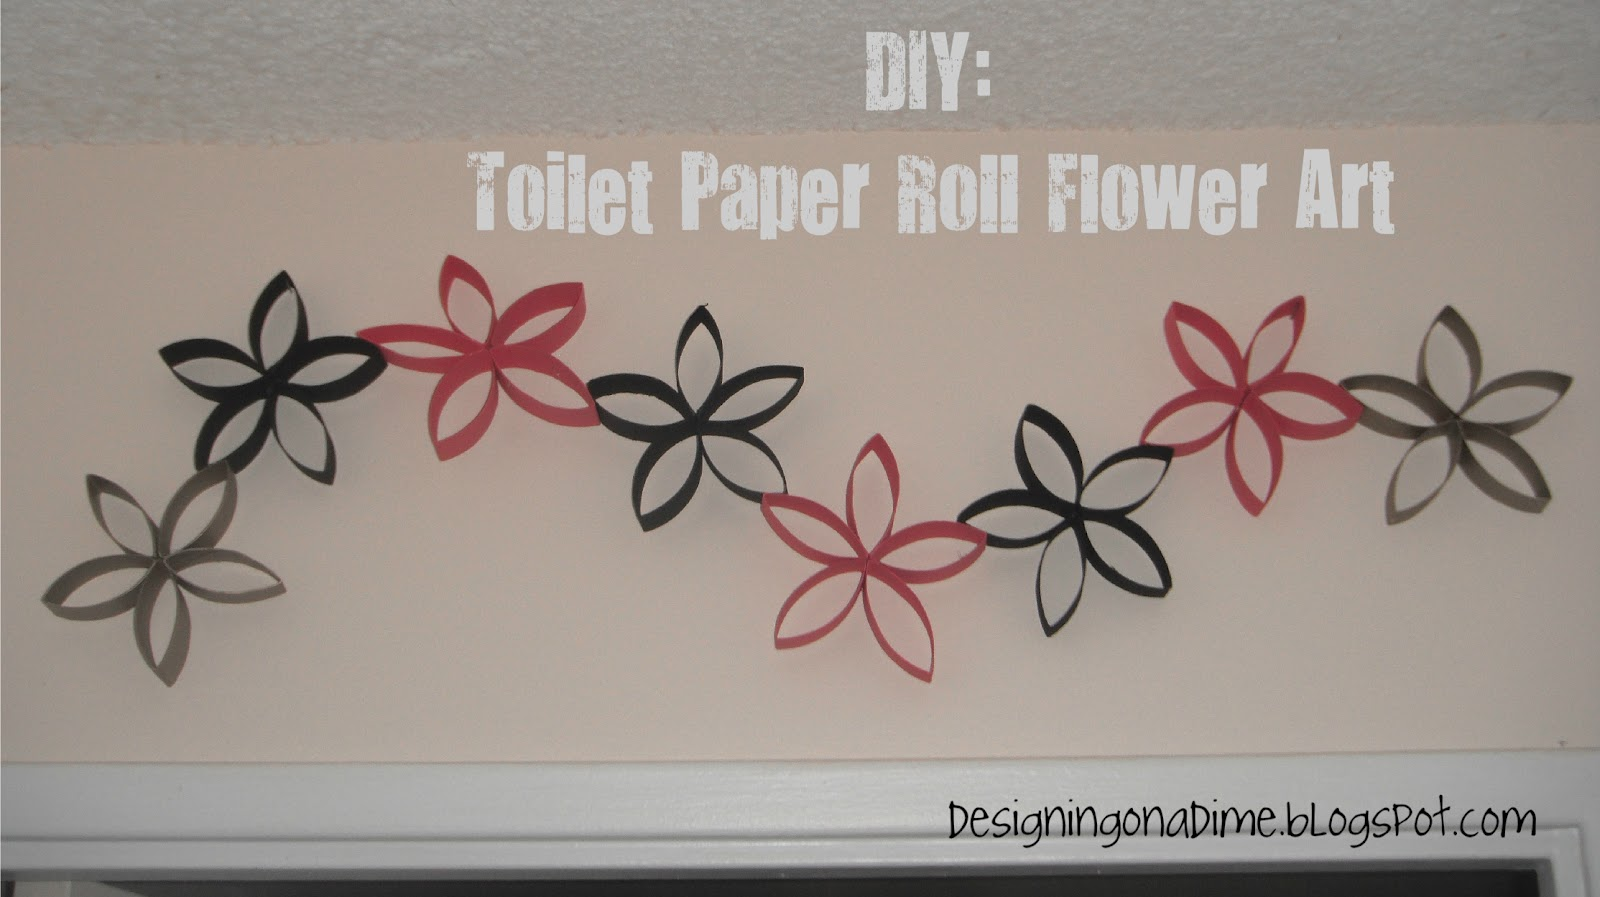 Paper crafts arts and crafts with toilet paper rolls diy toilet paper roll flower wall art amipublicfo Images